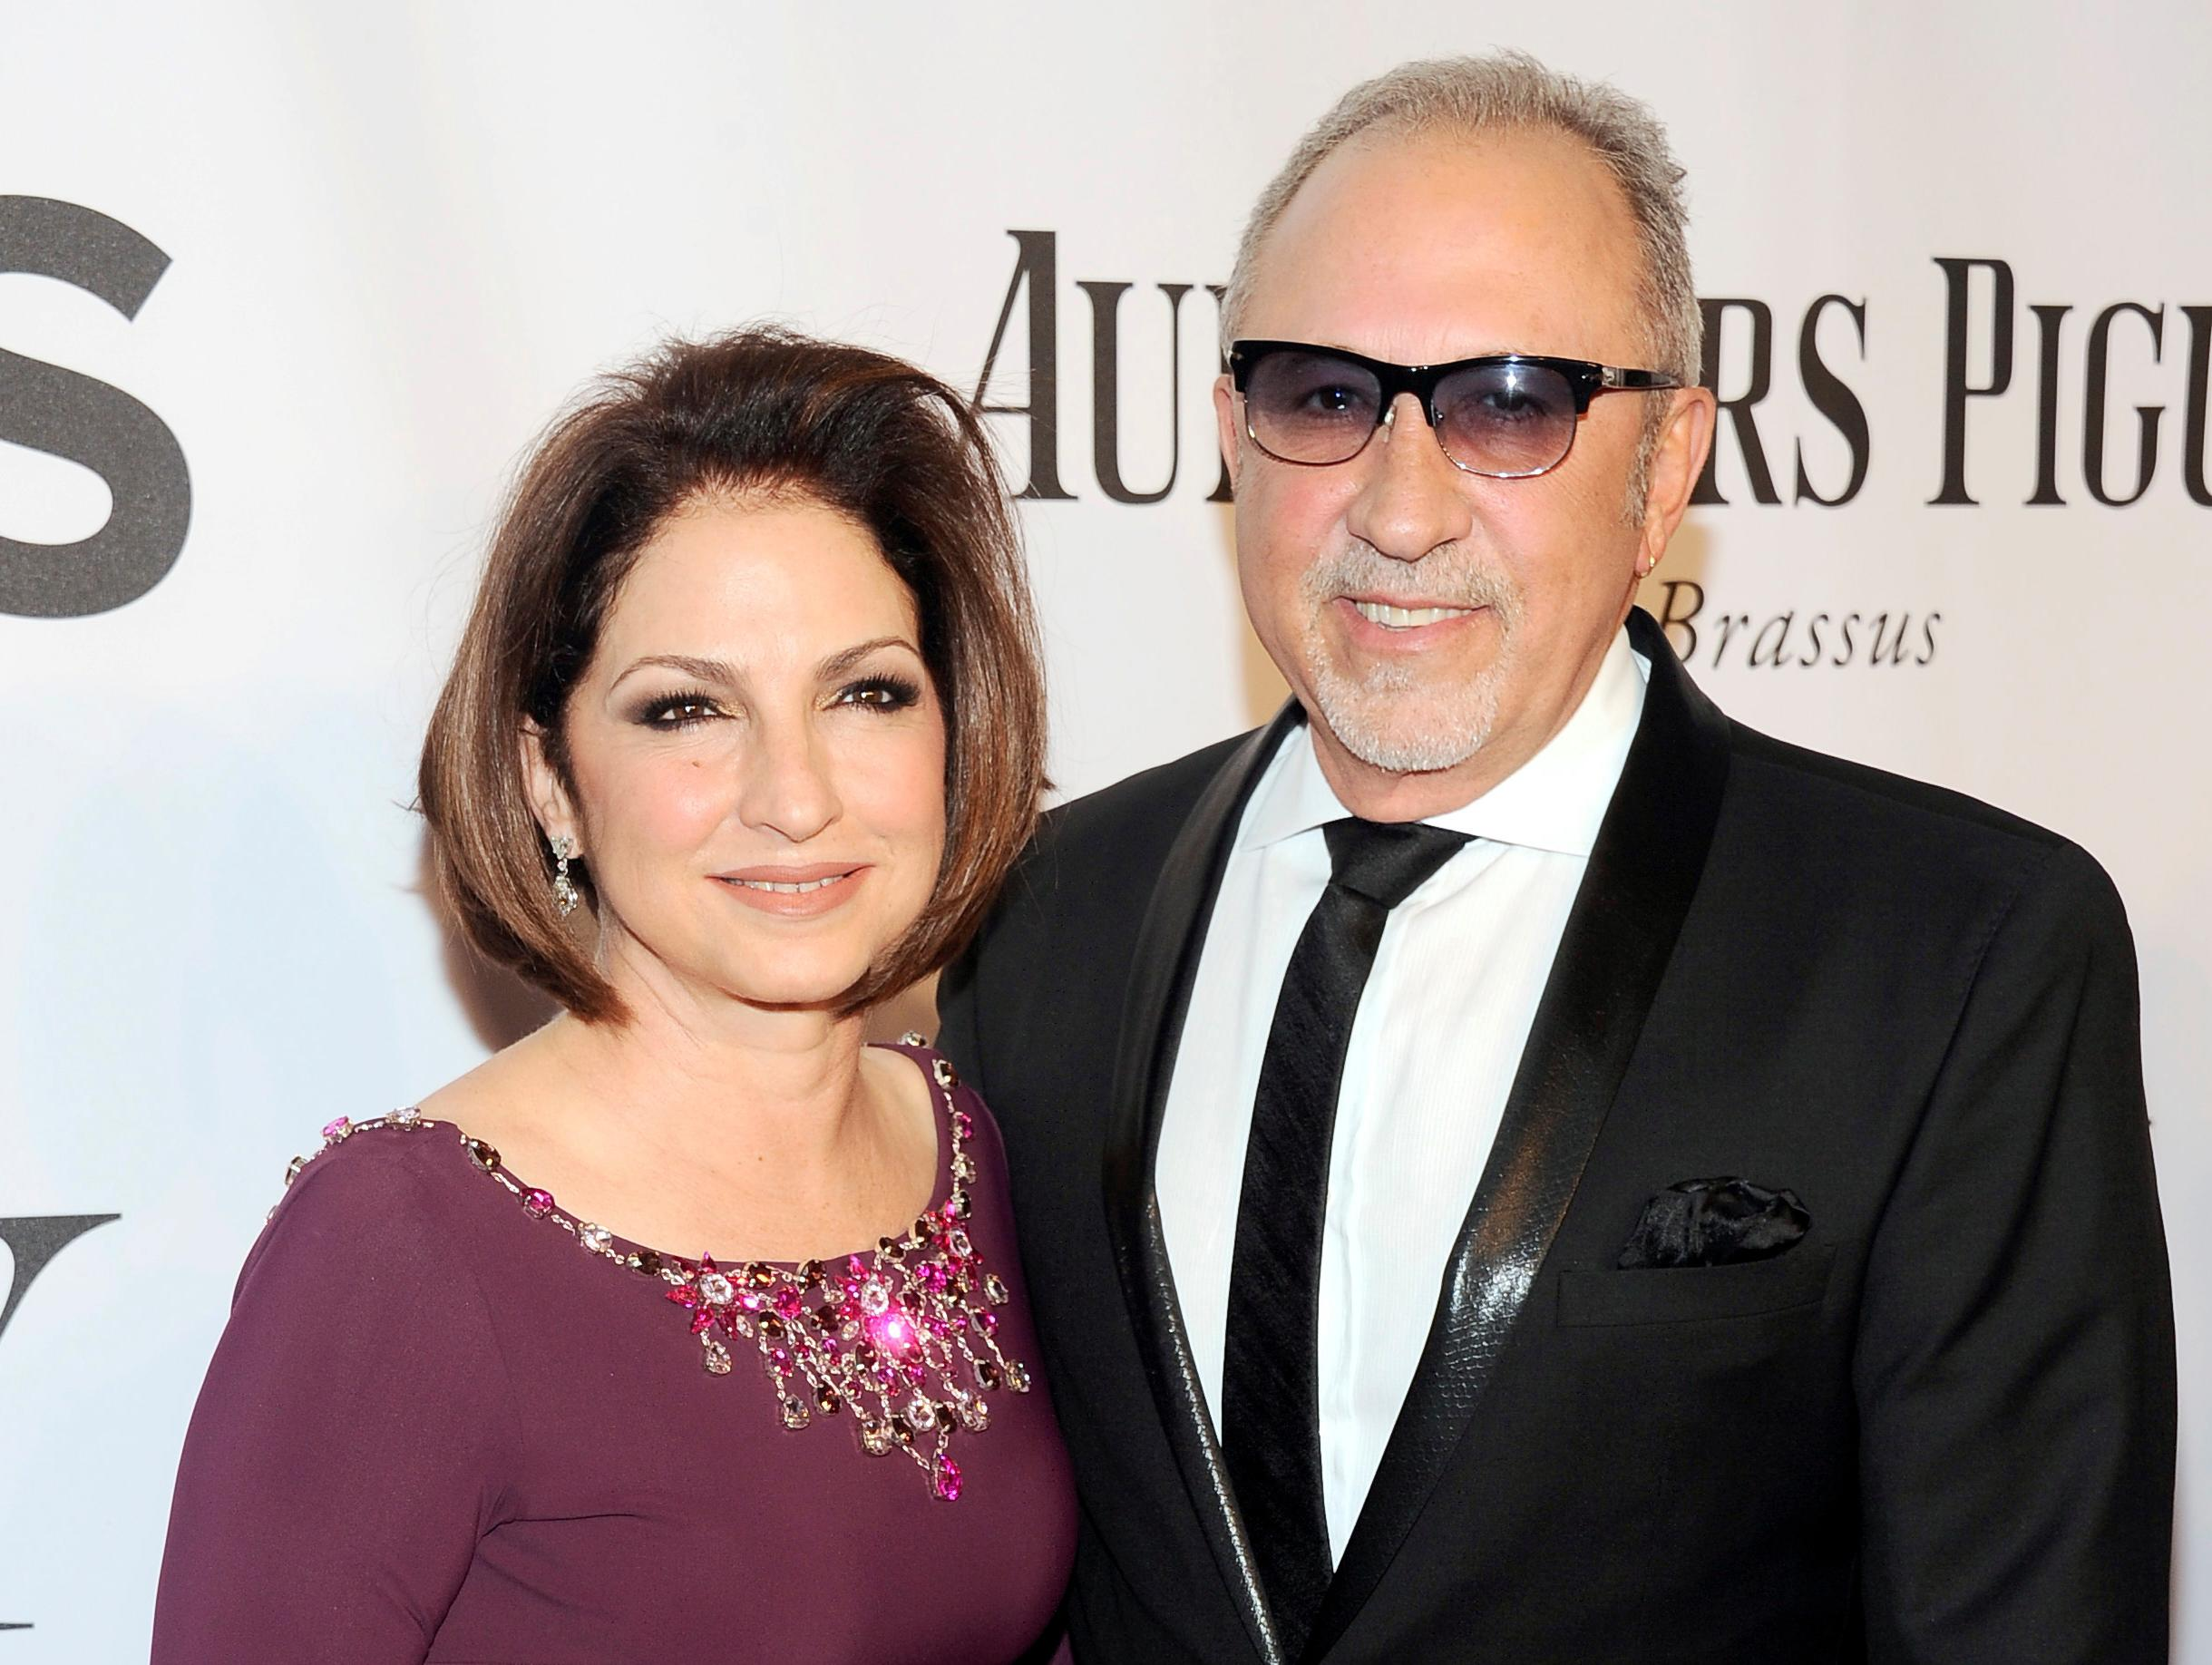 Gloria and Emilio Estefan celebrate immigrants in musical